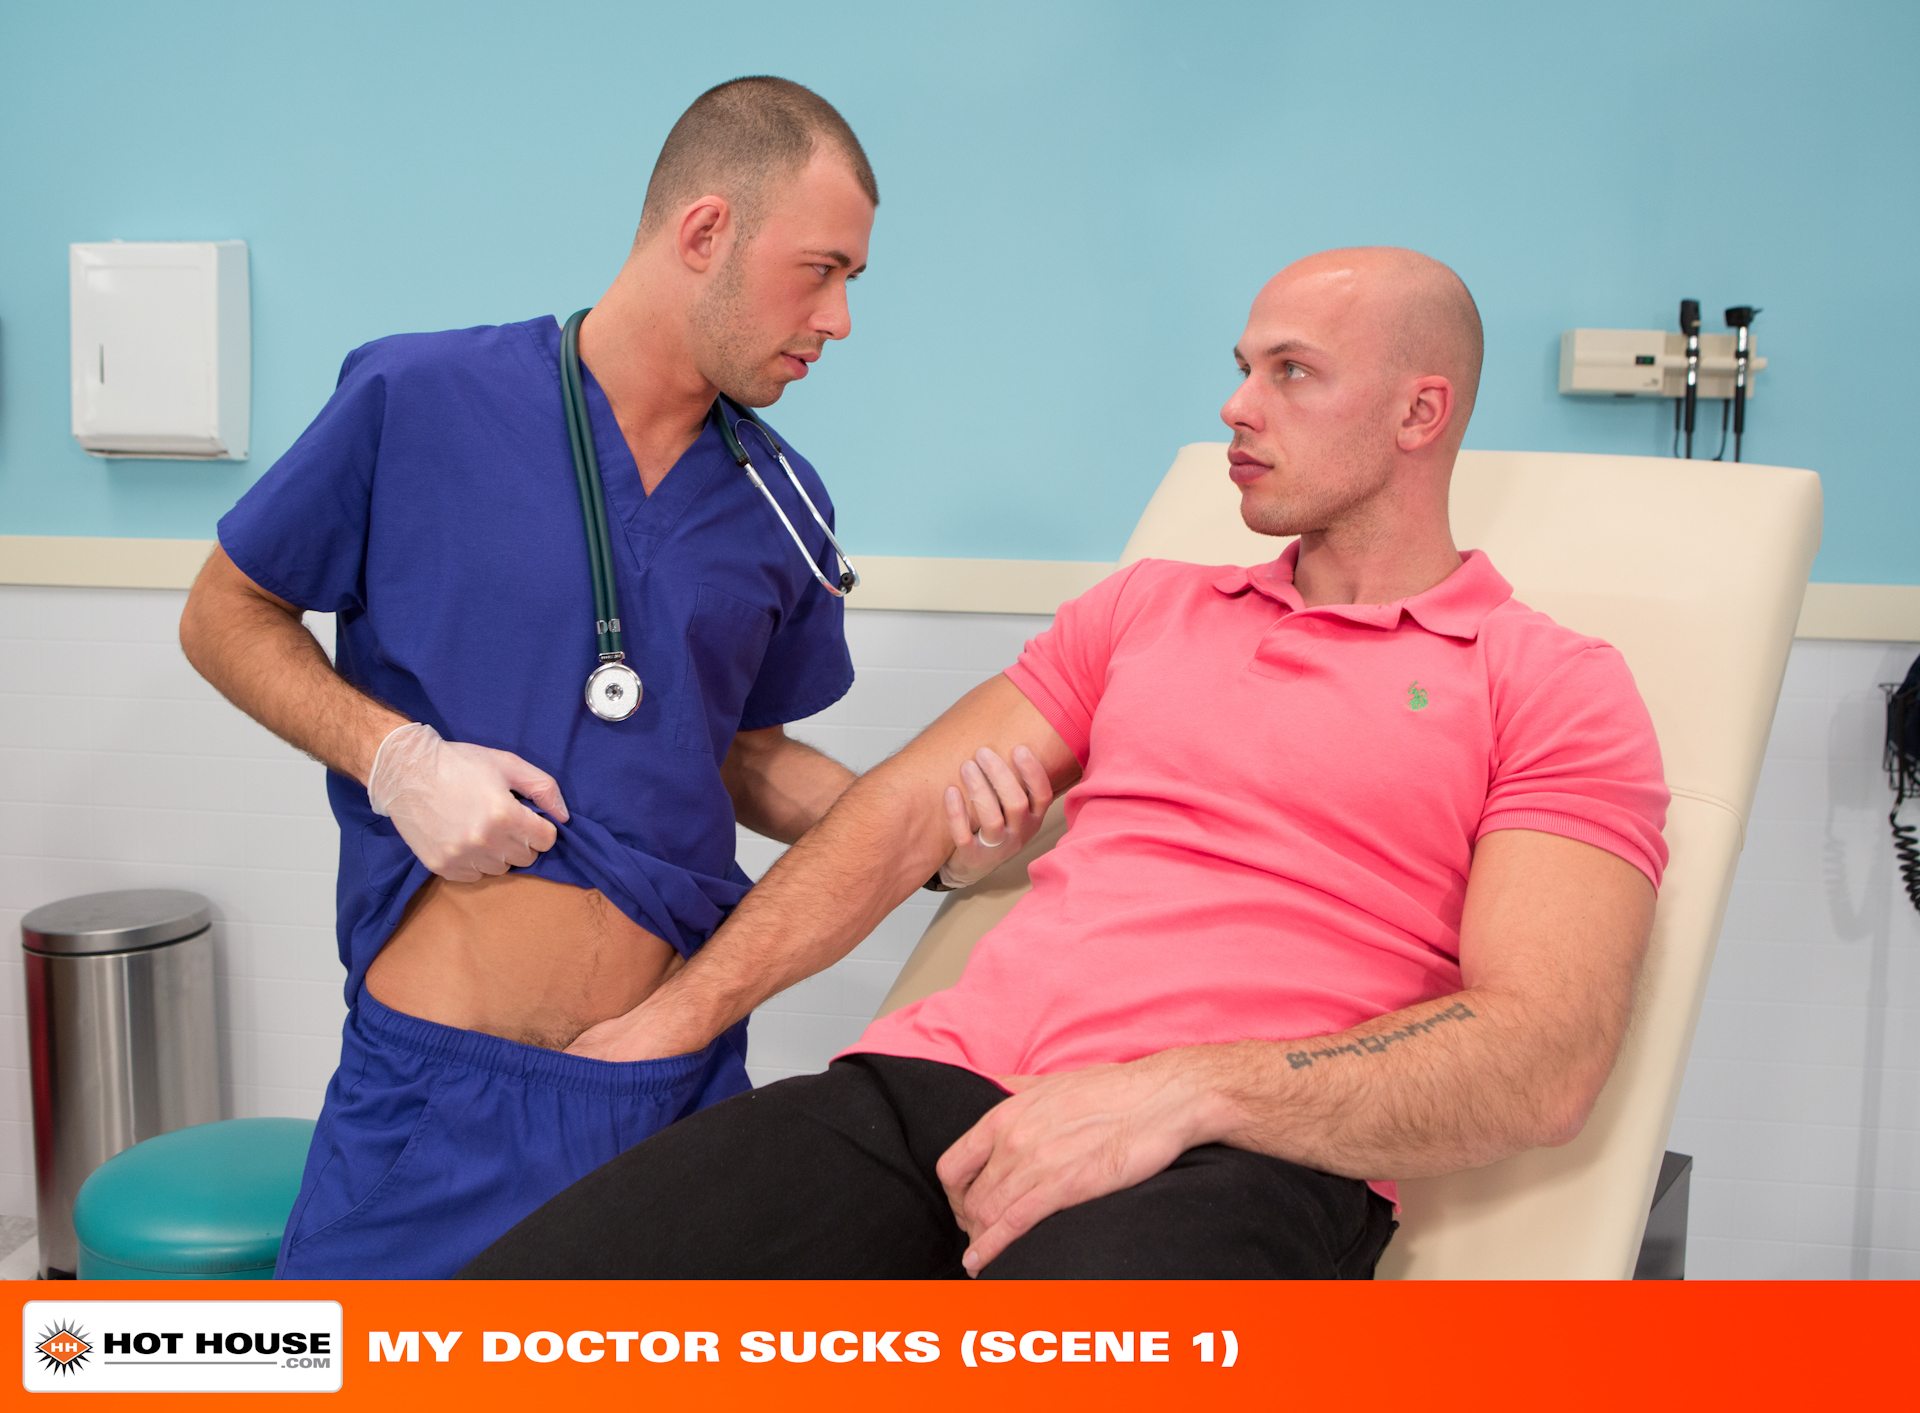 Hot House – My Doctor Sucks (Scene 1)